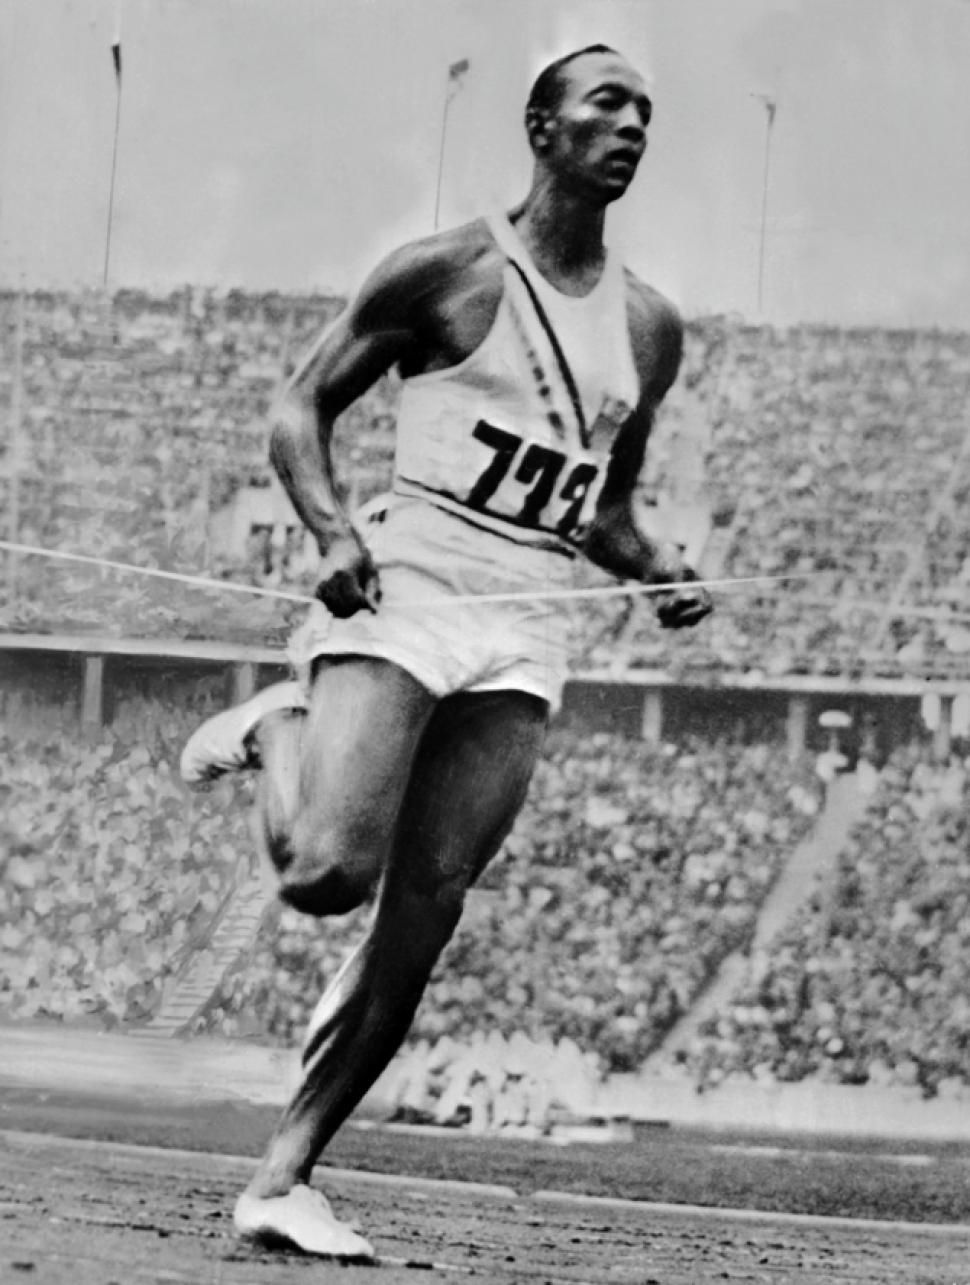 th owens wins th gold medal at the berlin 9th 1936 owens wins 4th gold medal at the 1936 berlin olympics african american track star jesse owens wins his fourth gold medal of the ga